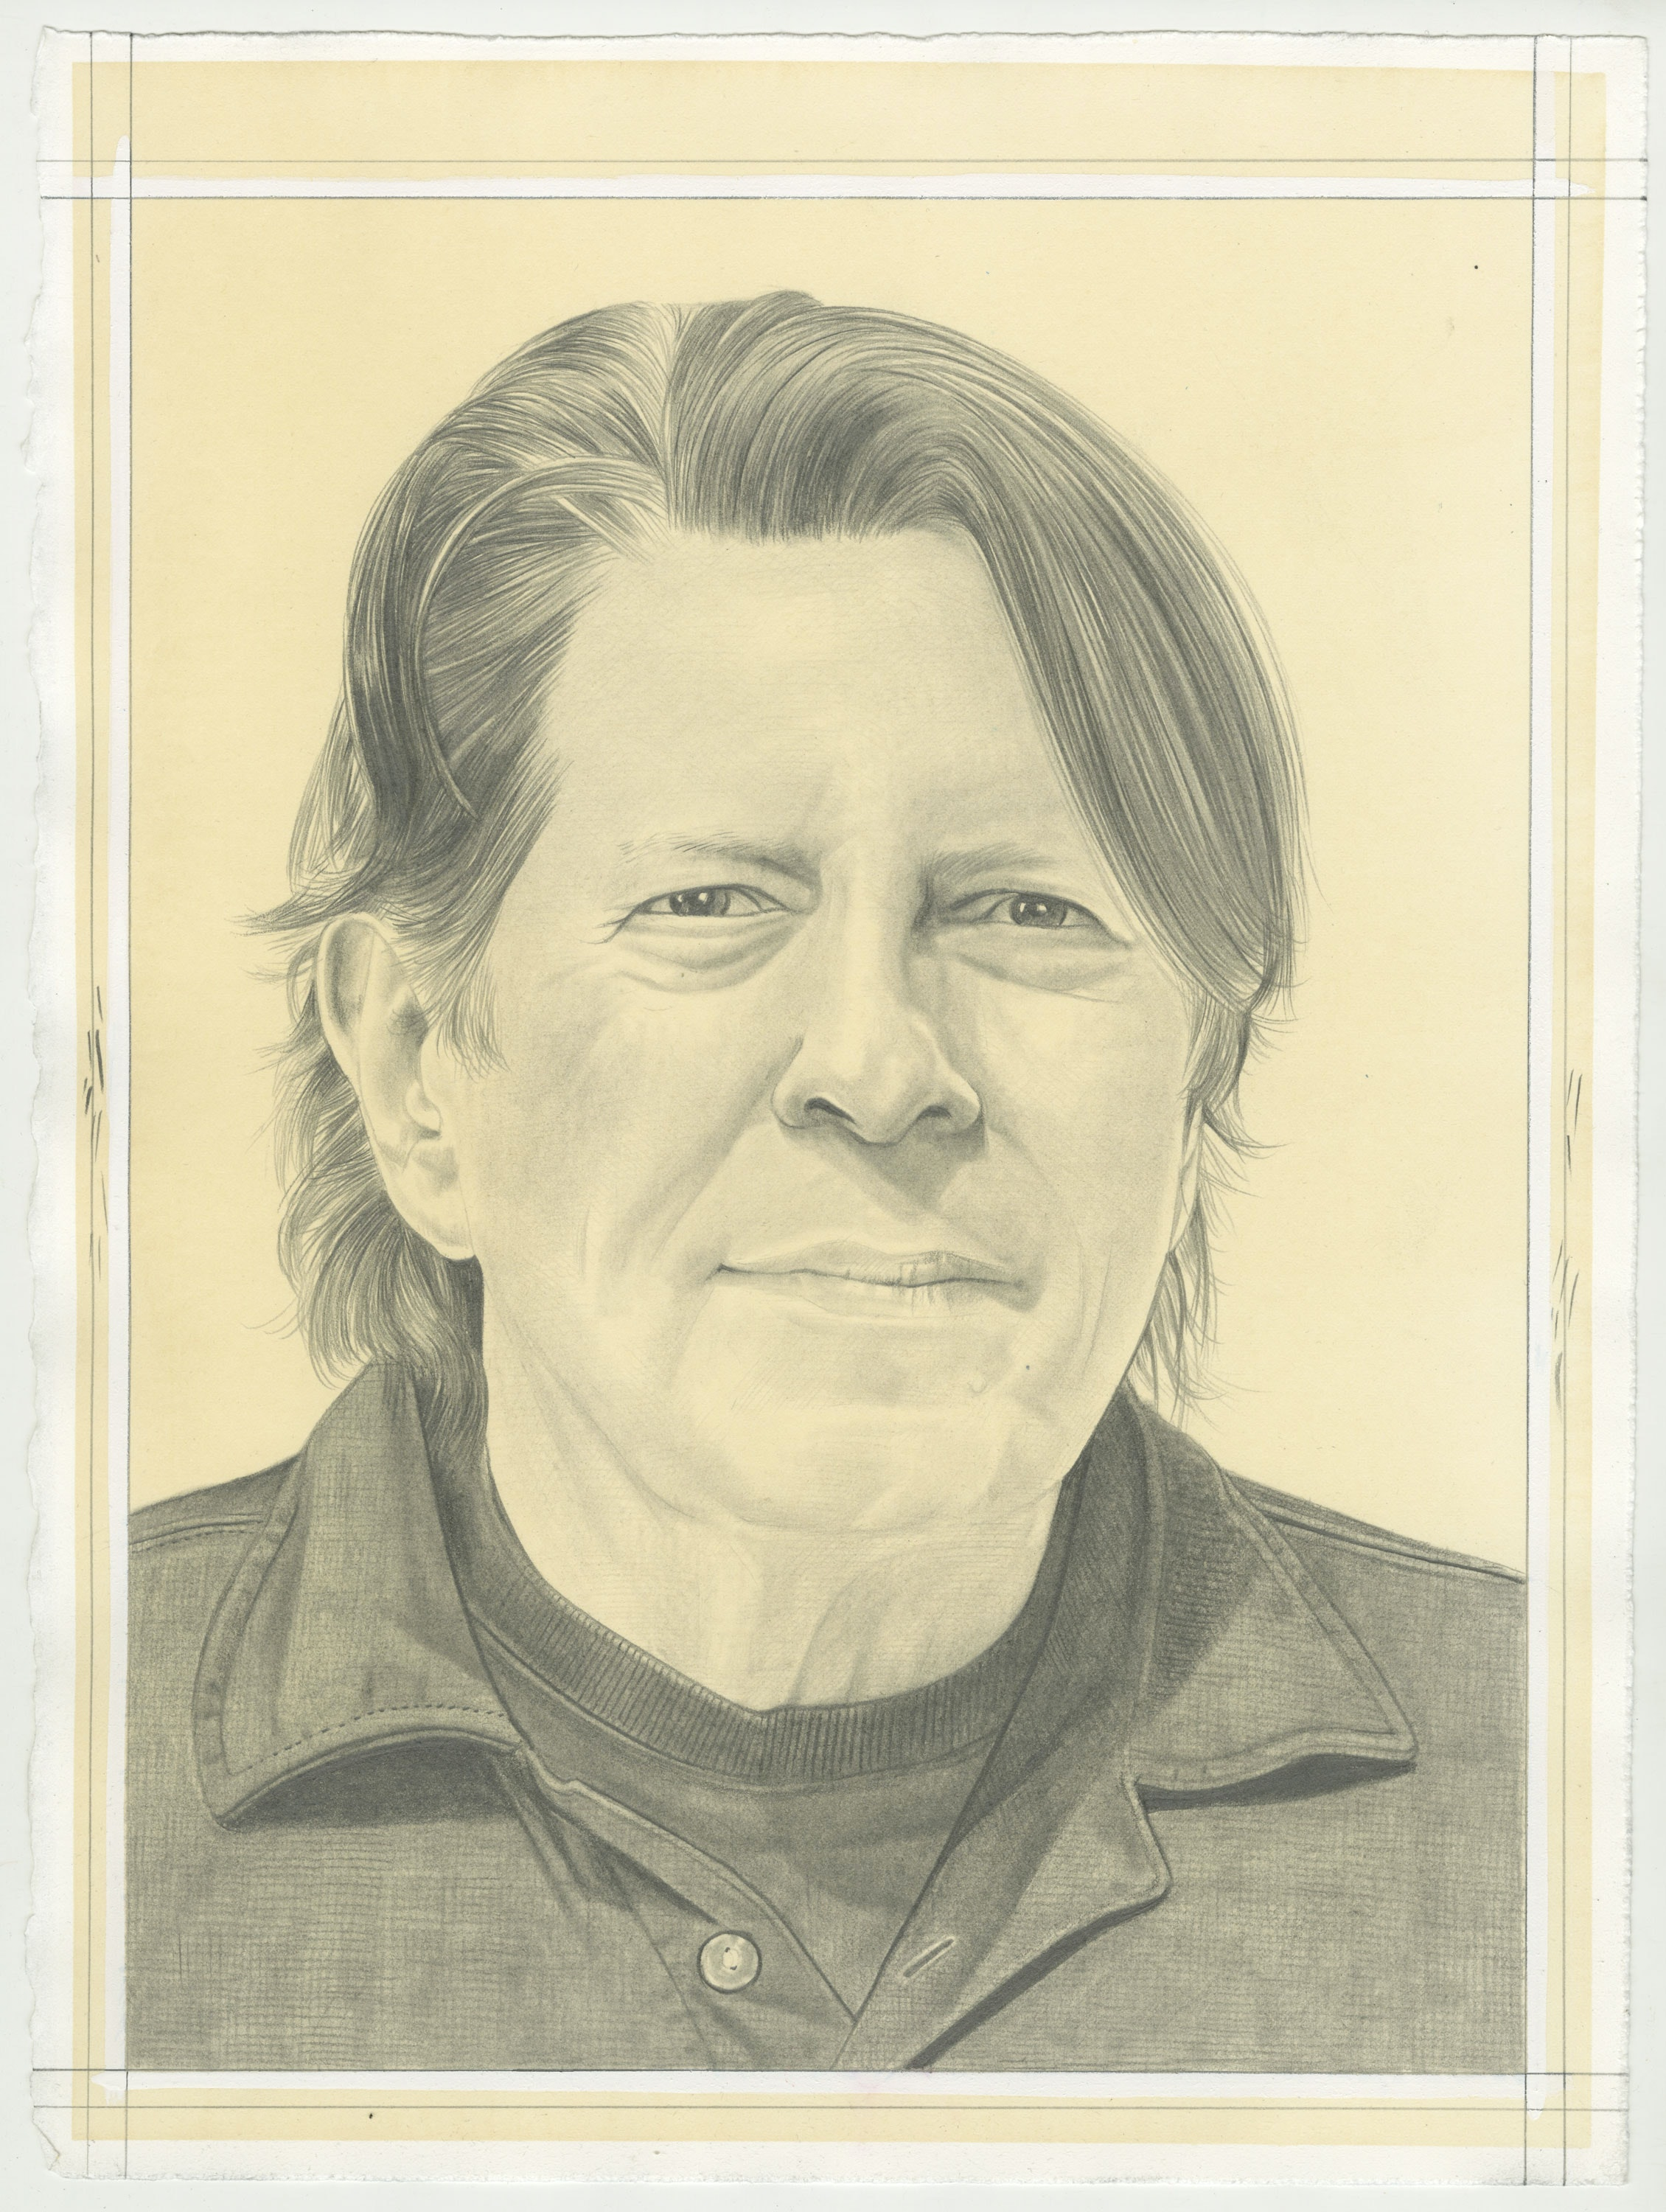 Portrait of Thomas Kovachevich, pencil on paper by Phong H. Bui